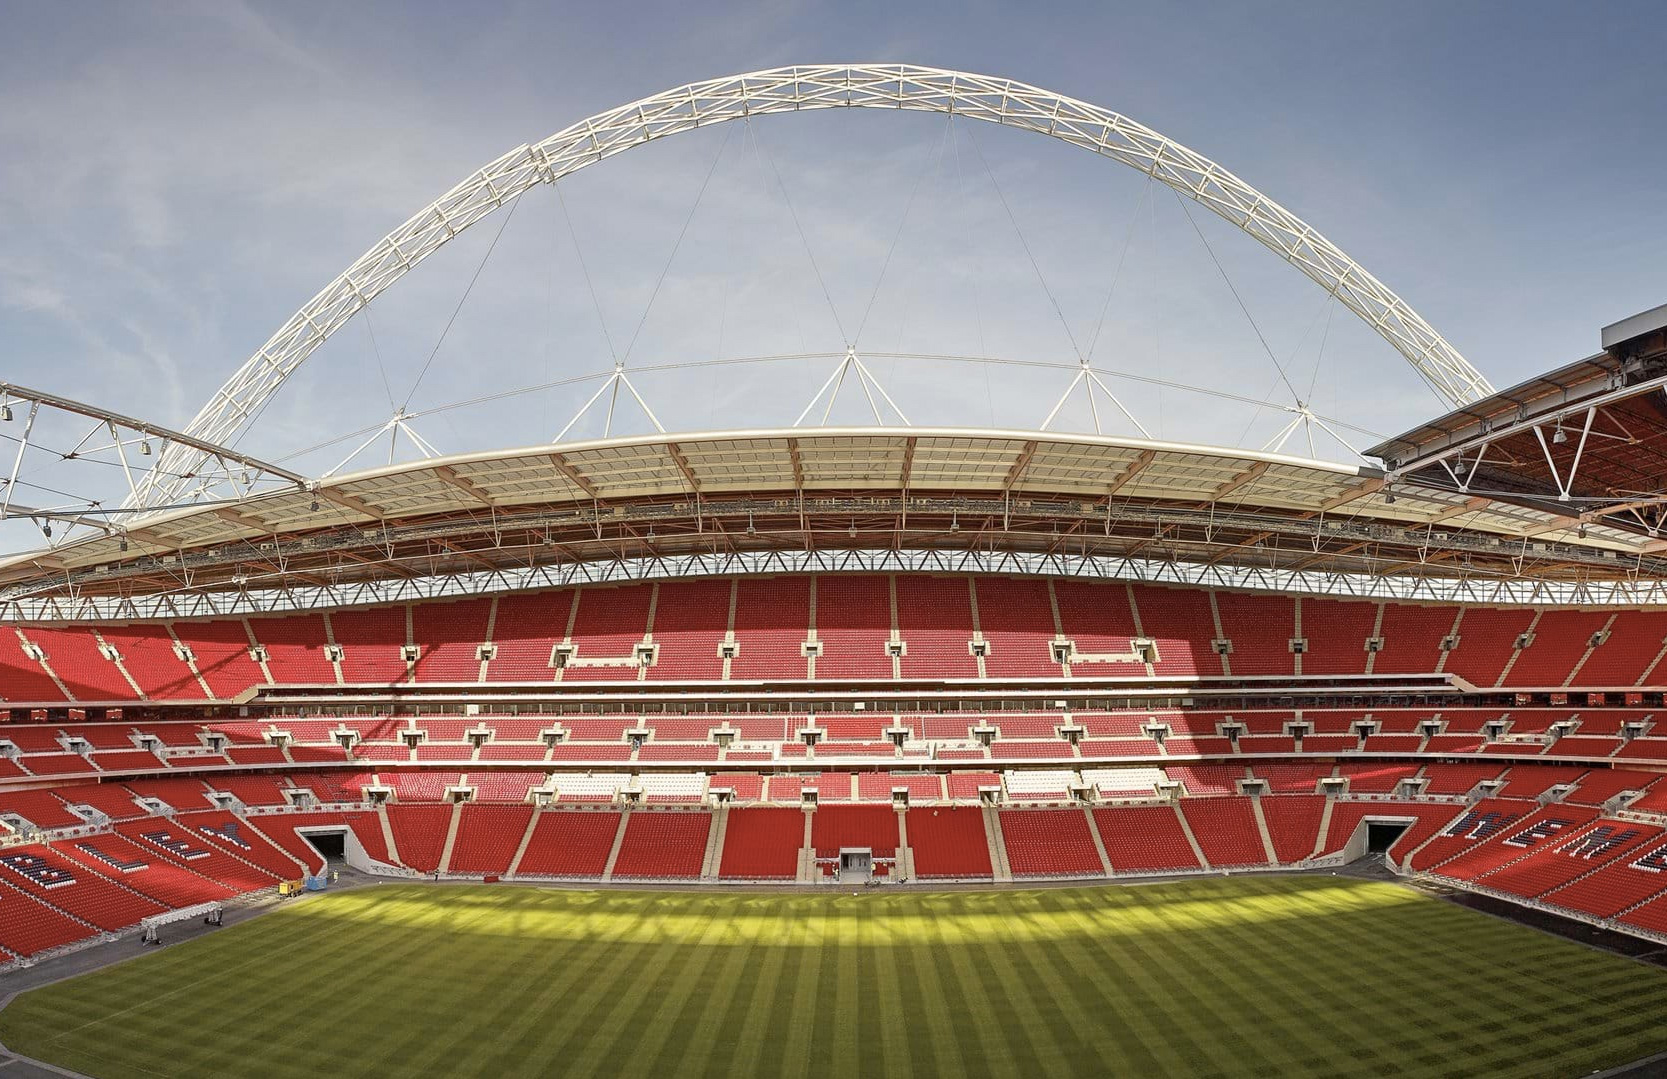 Is Wembley Football Stadium Is For Sale